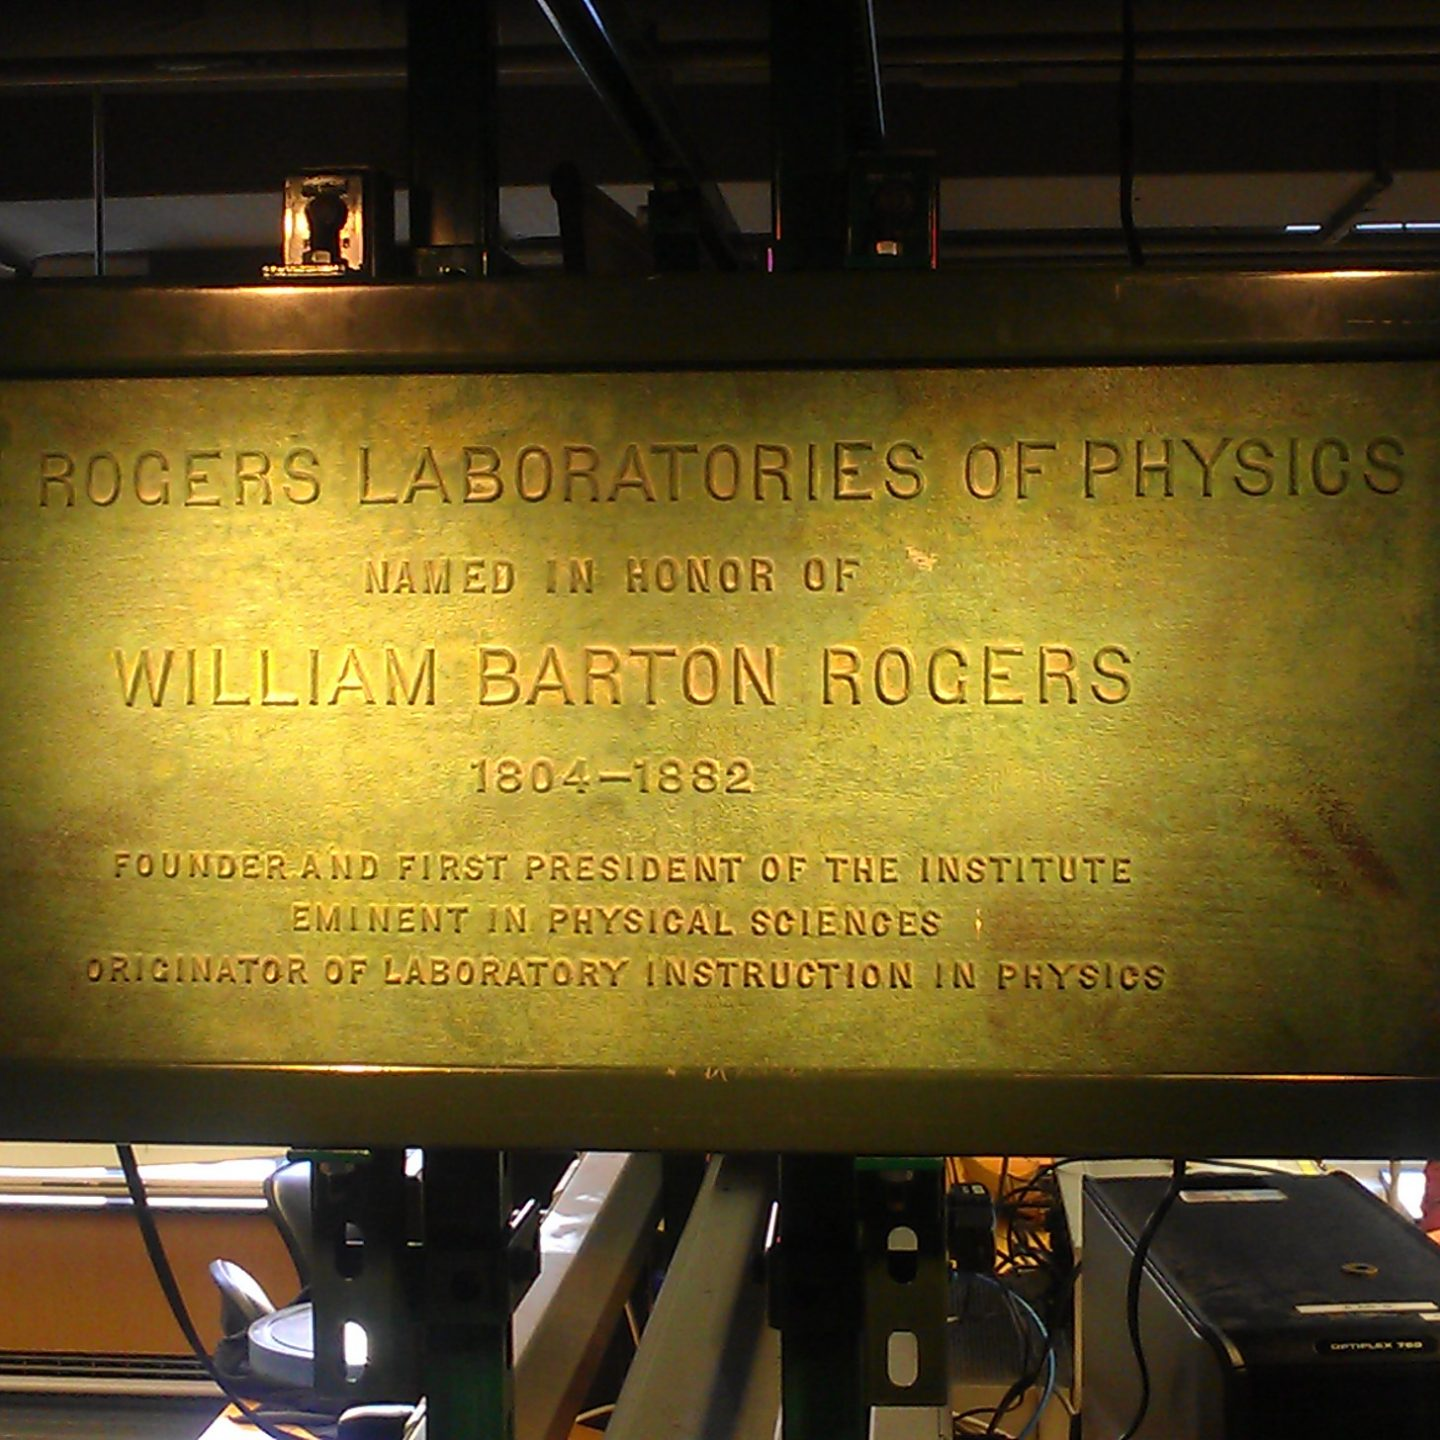 [Nov '12] Junior Lab Sign Mounting: The Rogers Laboratories of Physics Brass Sign